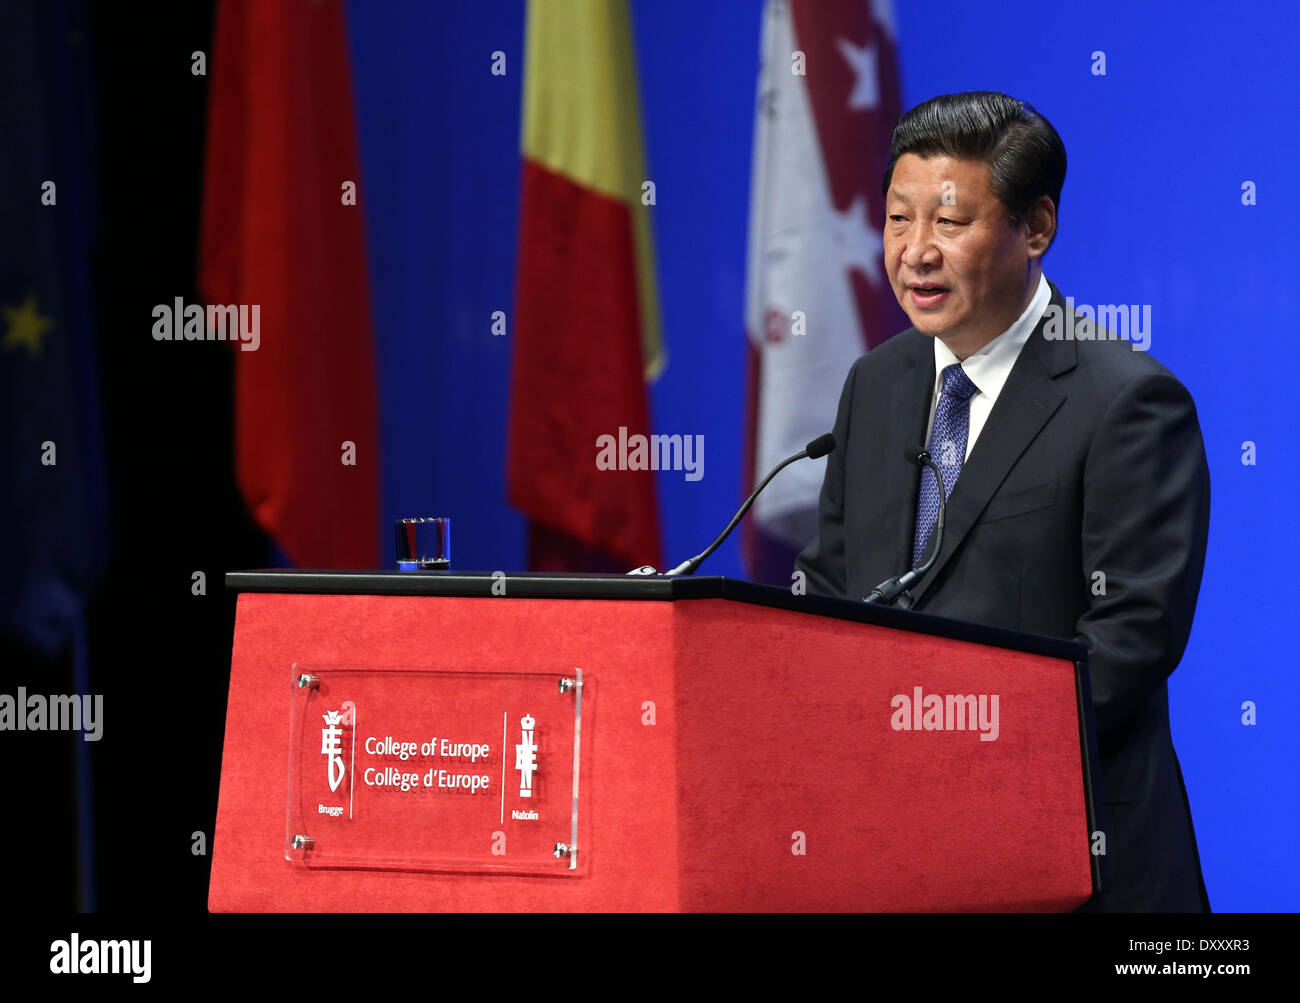 Brussels, Belgium. 1st Apr, 2014. Chinese President Xi Jinping delivers a keynote speech at the College of Europe in Bruges, Belgium, April 1, 2014. © Pang Xinglei/Xinhua/Alamy Live News - Stock Image